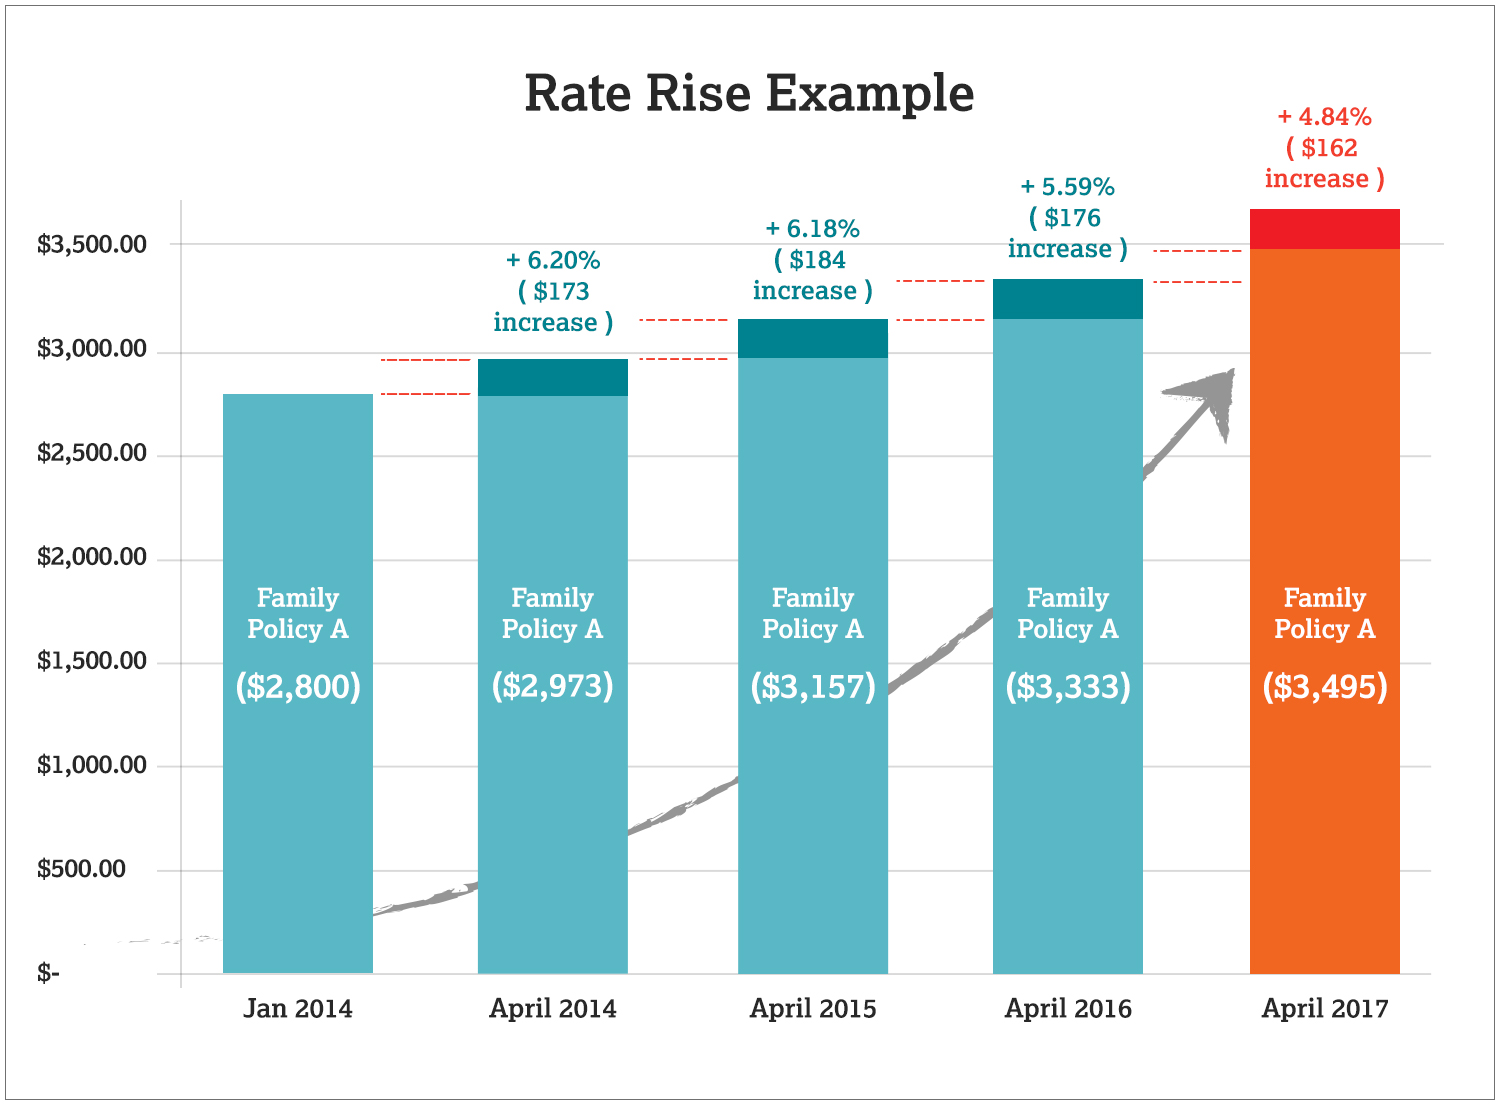 Rate Rise Example 2017